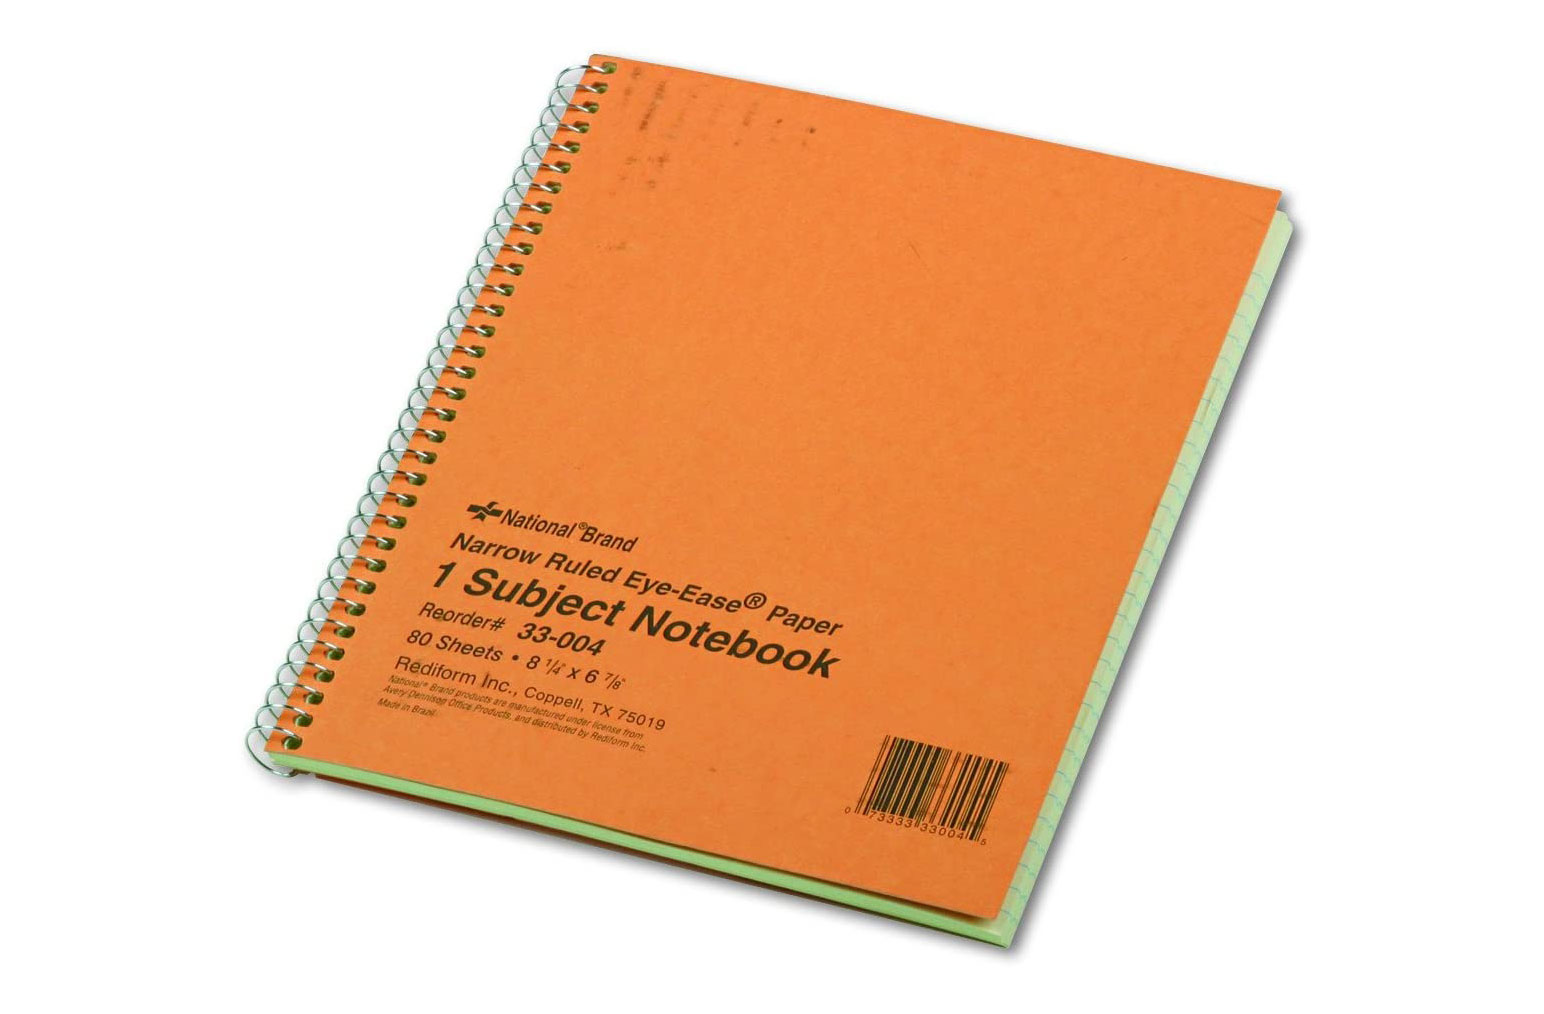 These green-paged memo notebooks are perfect